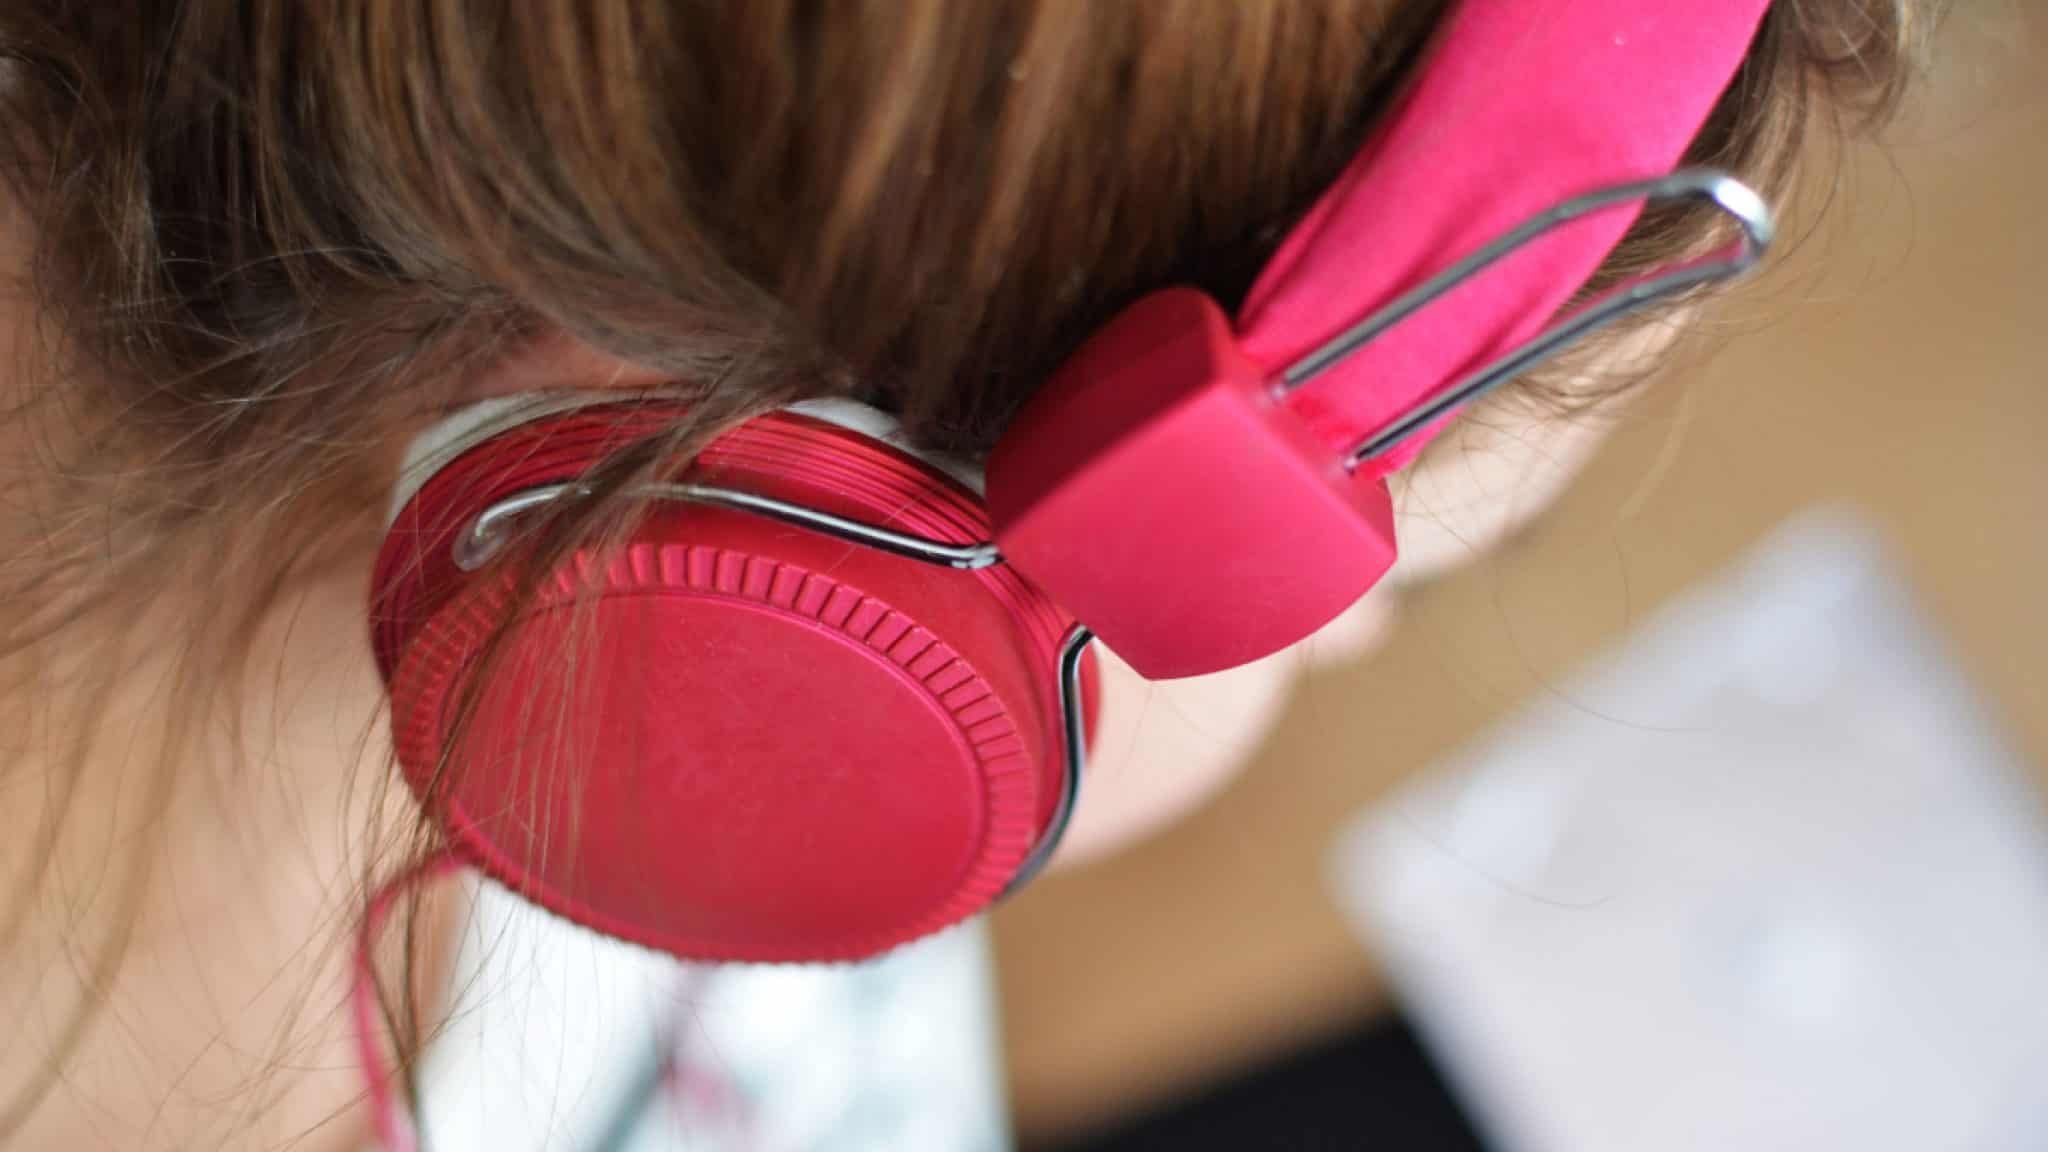 Best Headphones For Elementary School Computer Lab - We Got the Beat!